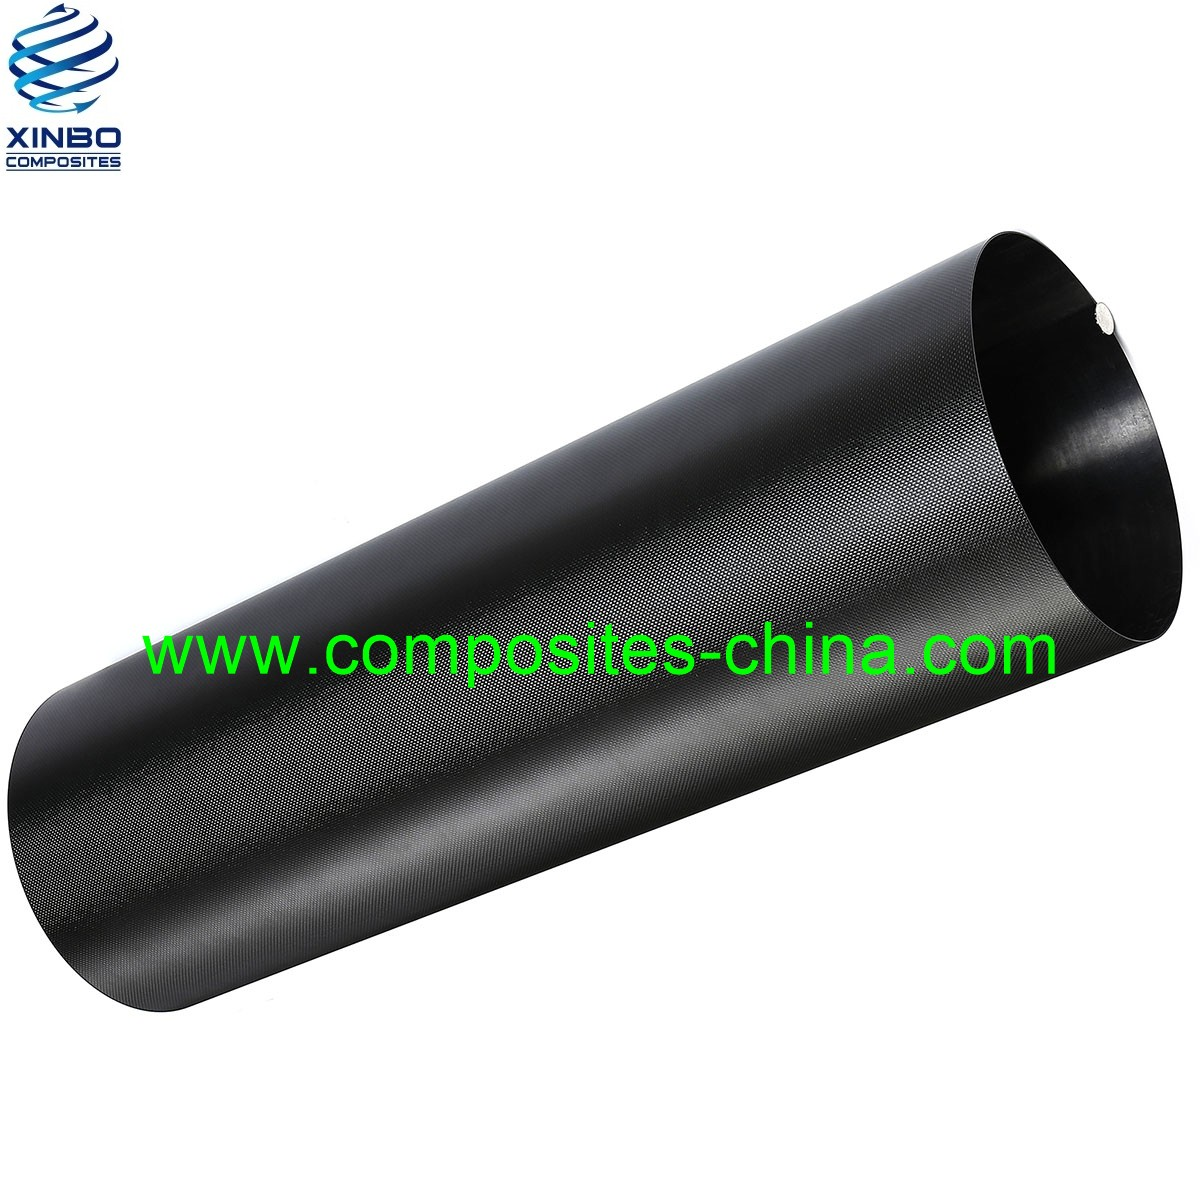 Different Type of Carbon Fiber Tube in Low Price Made by Chinese Supplier